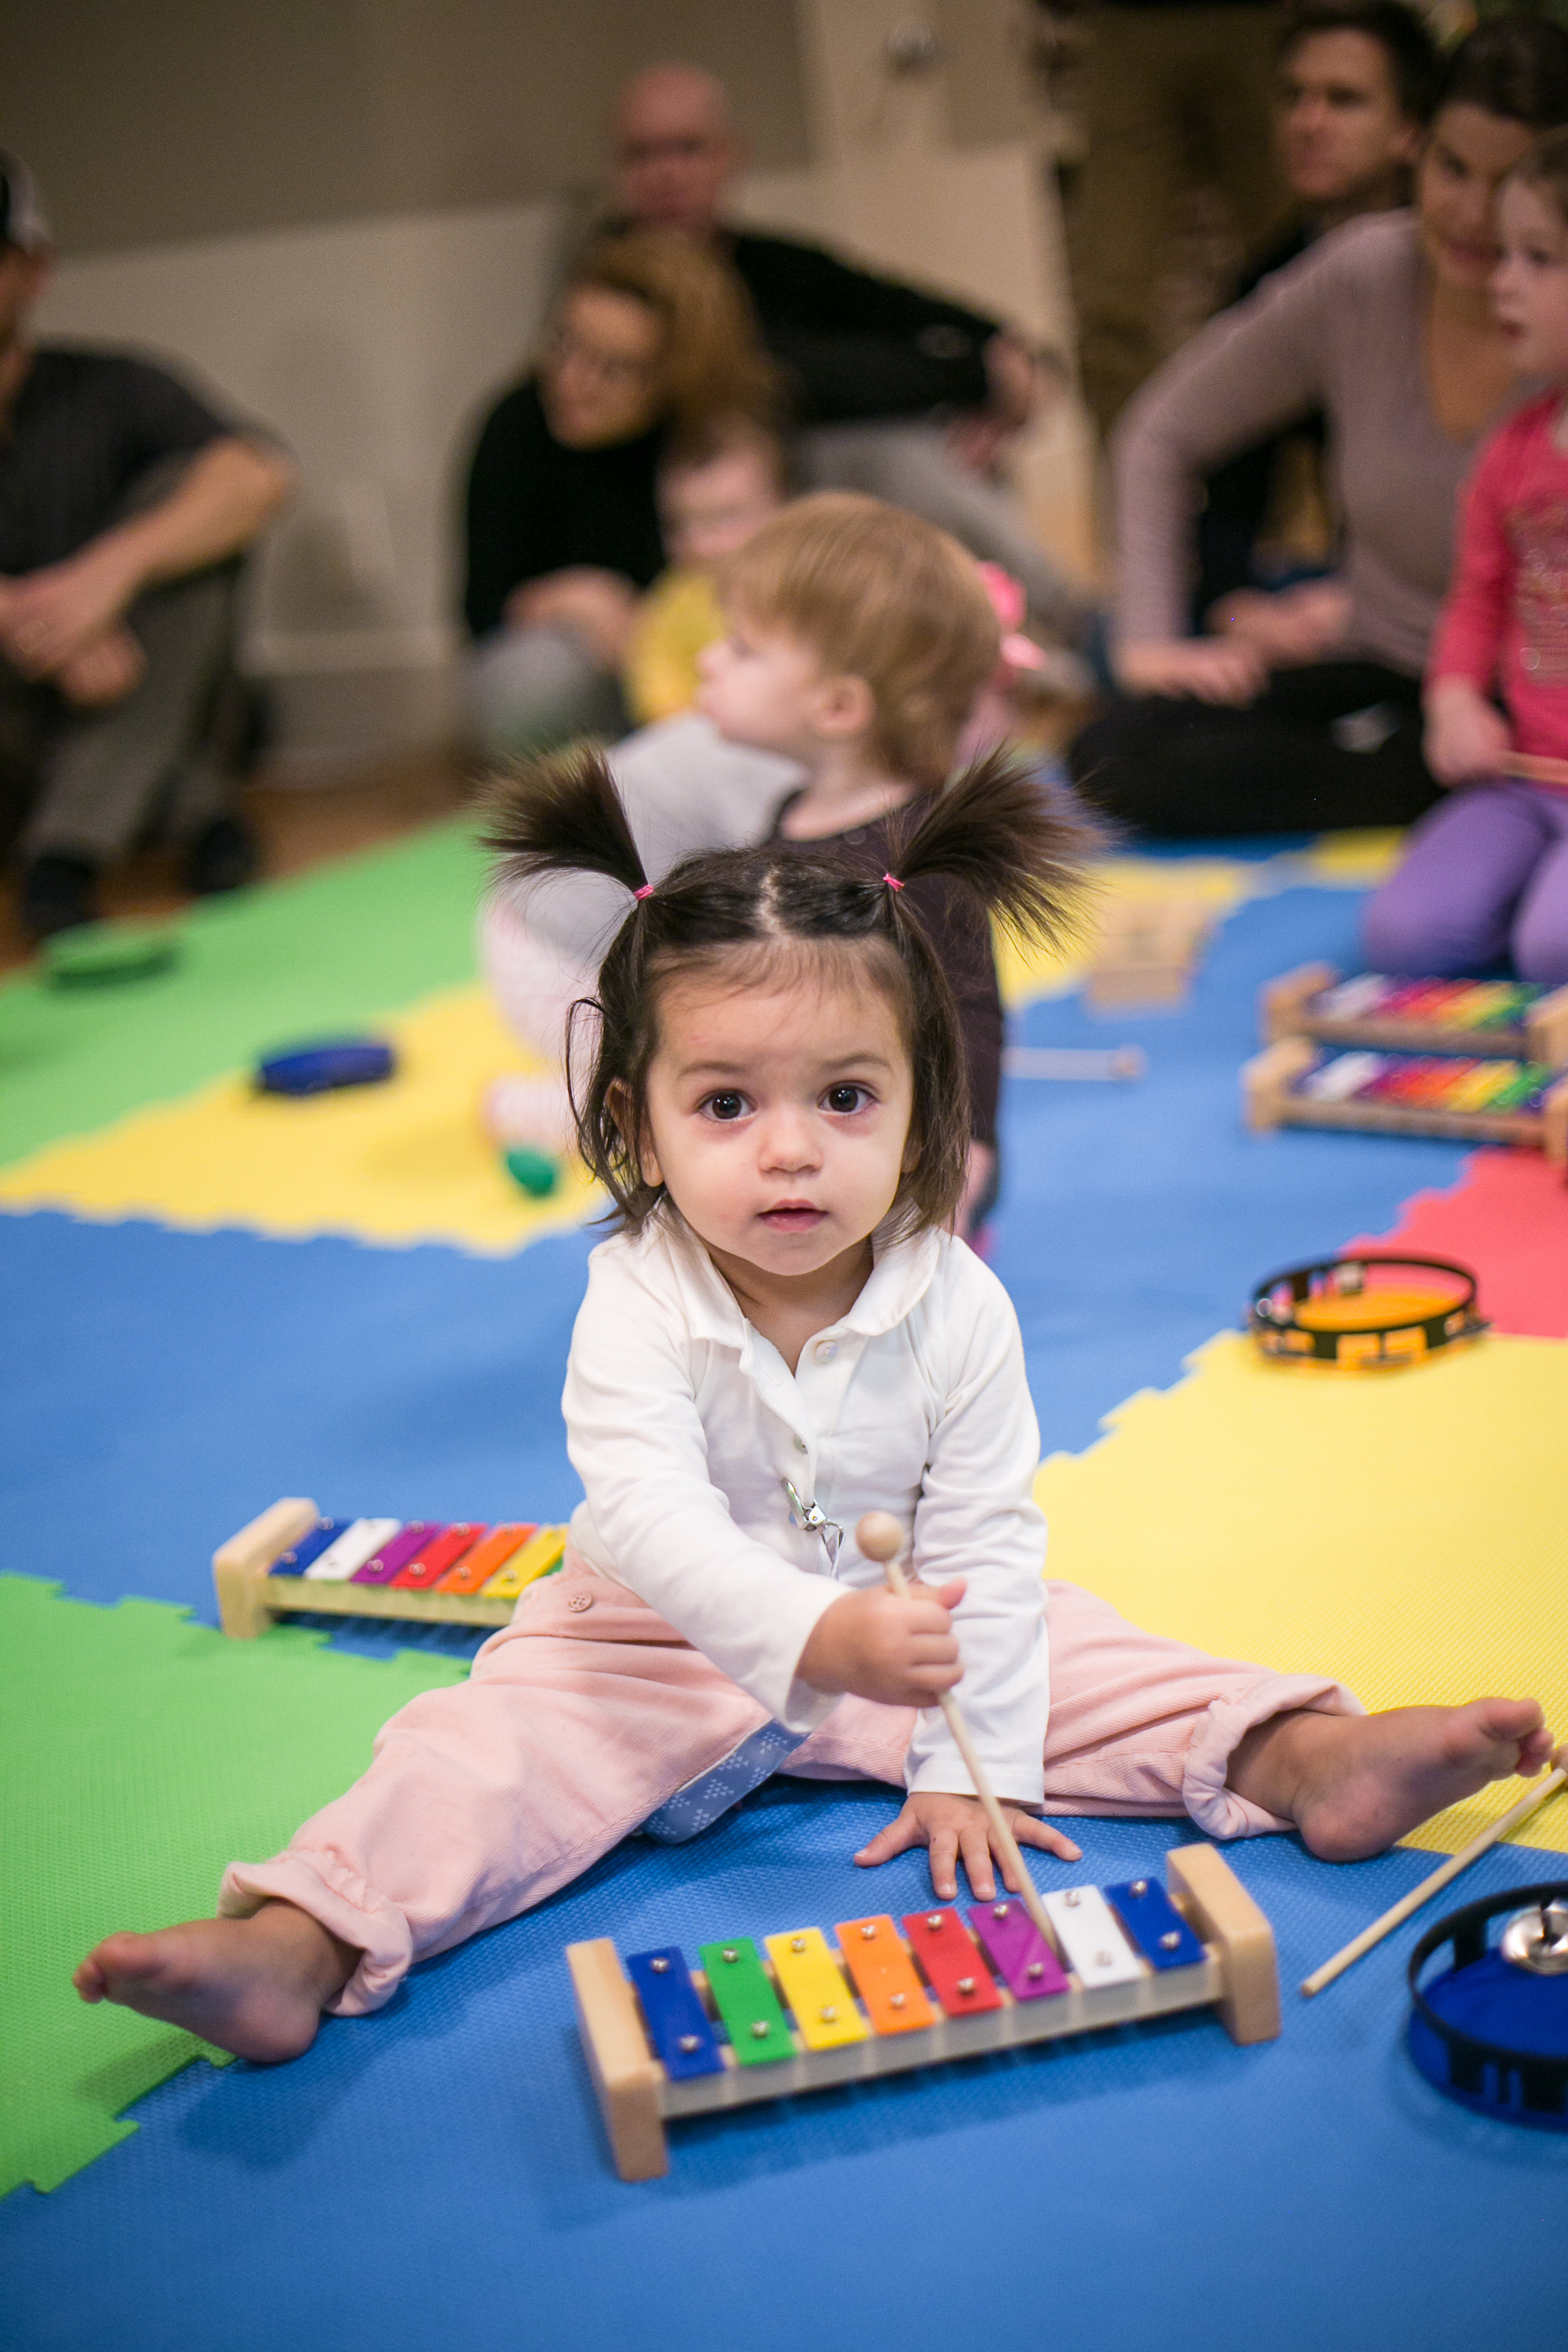 Little Jay Music & Play - Little Jay Music and Play is a 40-minute high energy music class designed for your active toddler. Inspired by my daughter